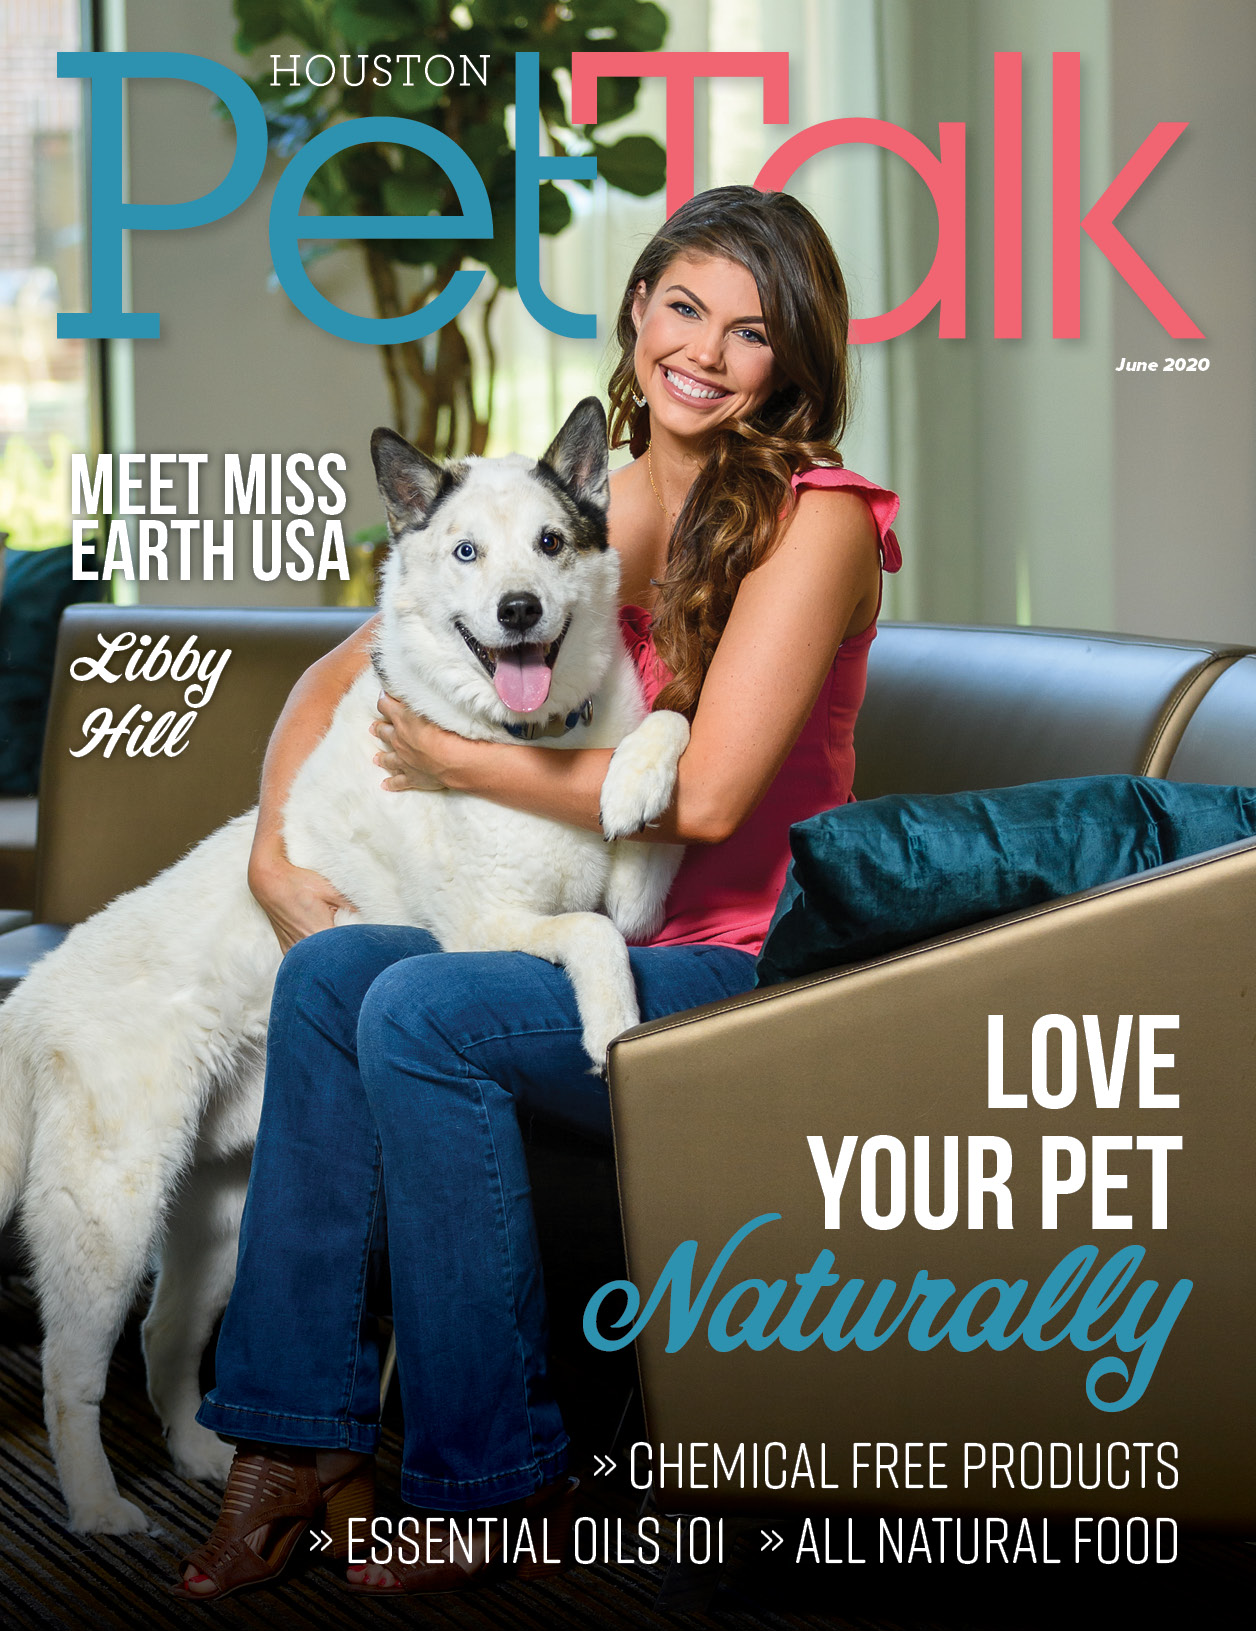 June 2020 Digital Issue of Houston PetTalk